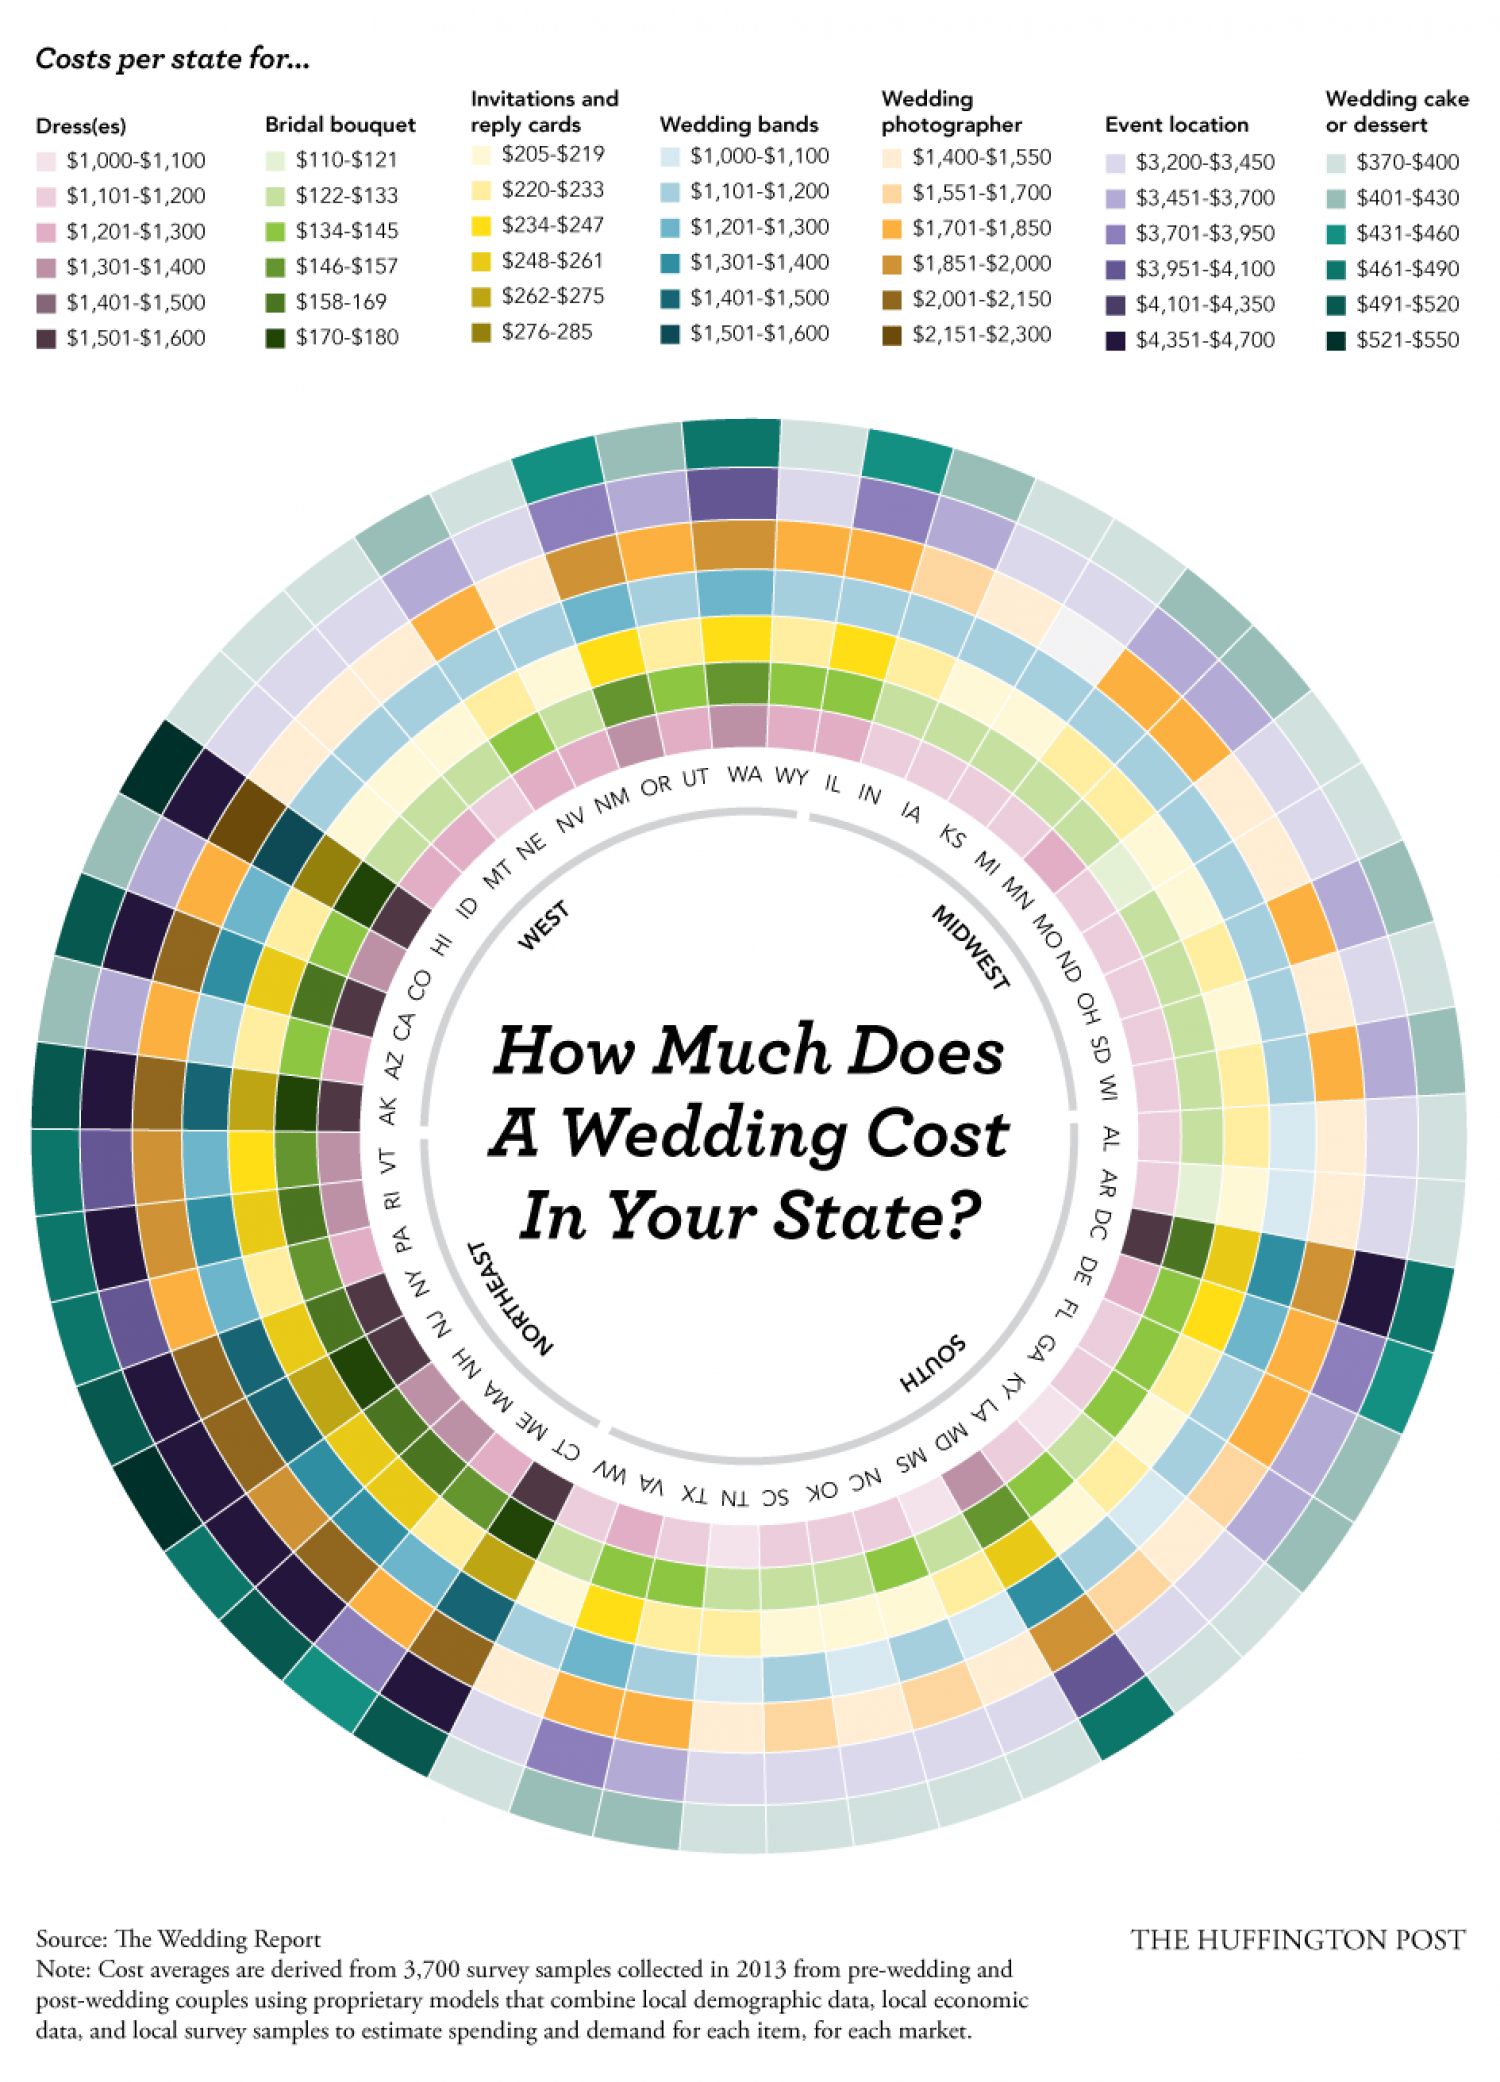 How Much Does A Wedding Cost In Your State